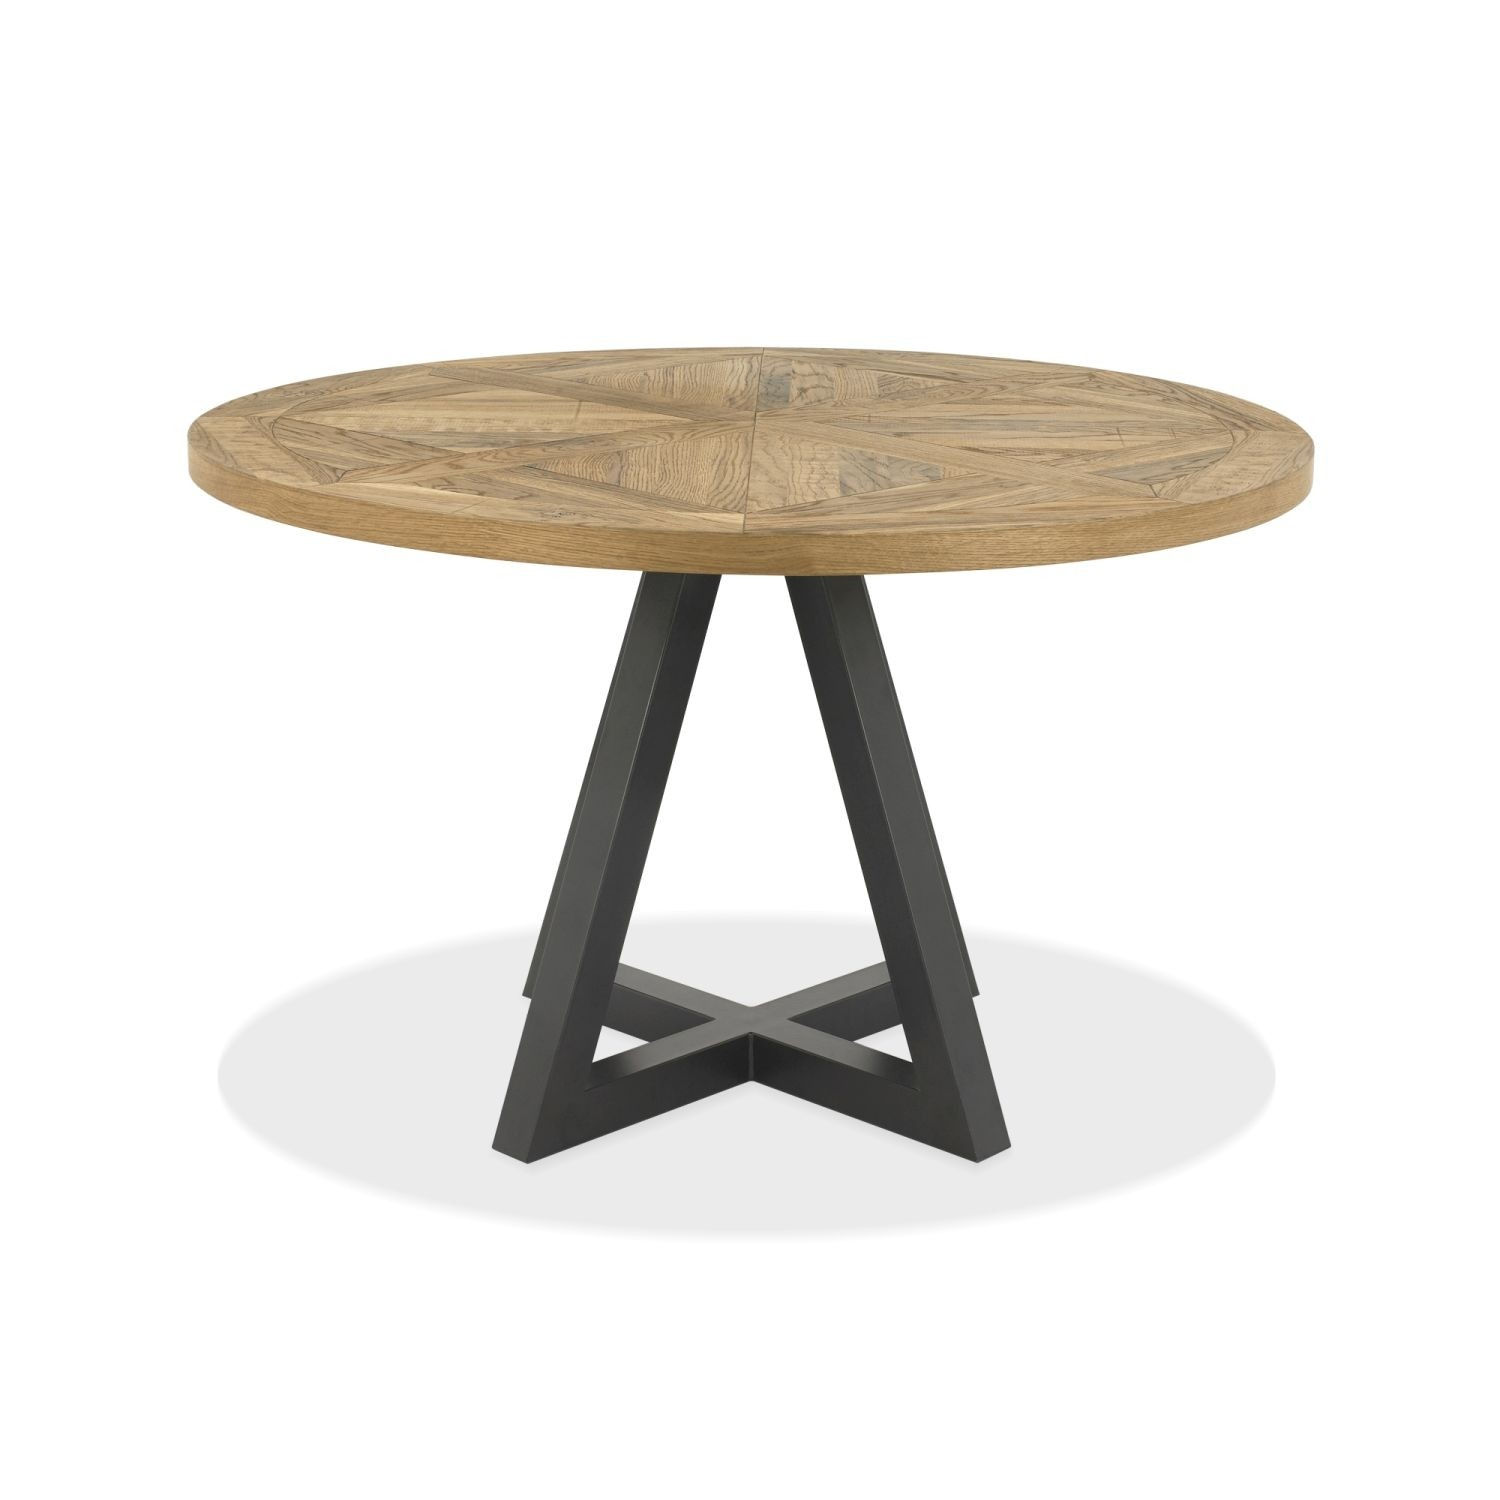 Finsbury Round Dining Table Rustic Oak Peppercorn